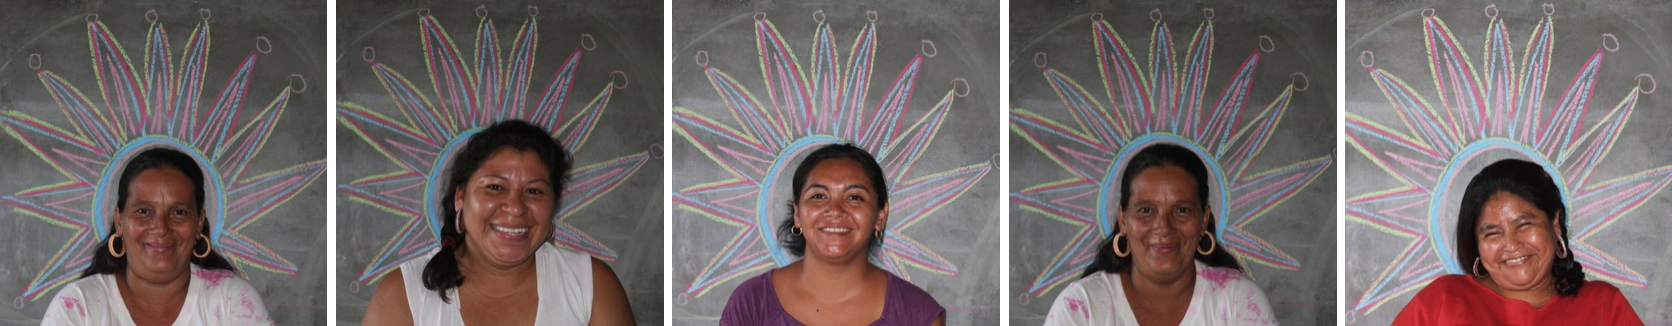 SIRENS Jewelry Lab in El Salvador explored using material found in local market to create jewelry. By re-imagining the objects available in their own communities, the women of El Rosario discovered a renewed vision for material abundant to them; and transformed all material into jewelry. The workshop concluded with picture day in front of a hand-drawn crown.